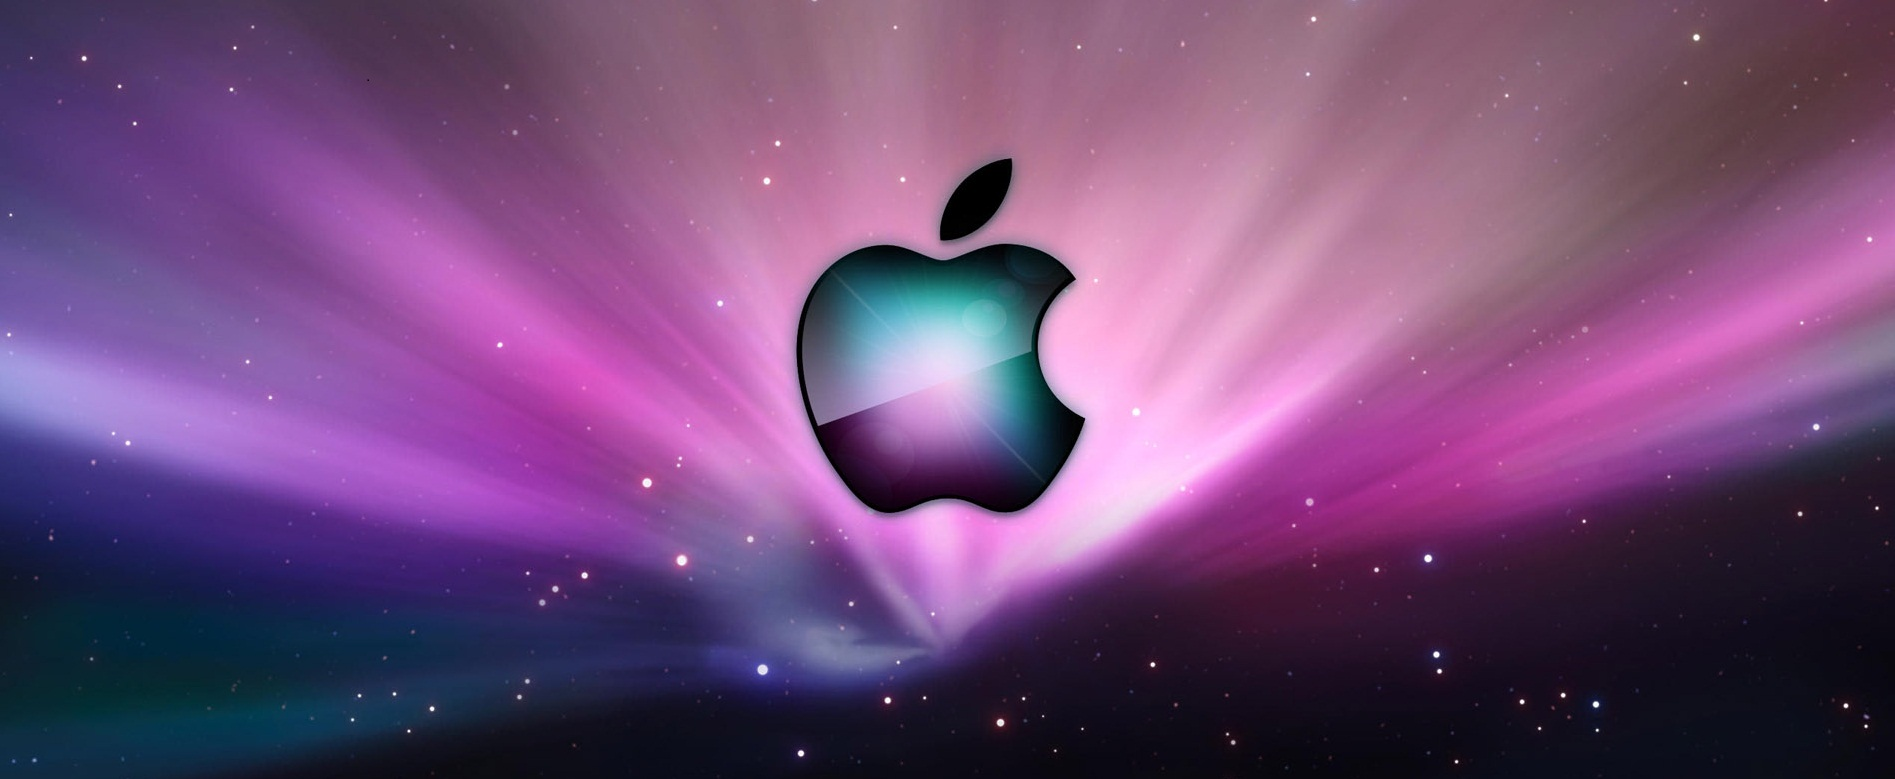 FreeGreatPicture_com-21996-apple-wallpaper-high-definition